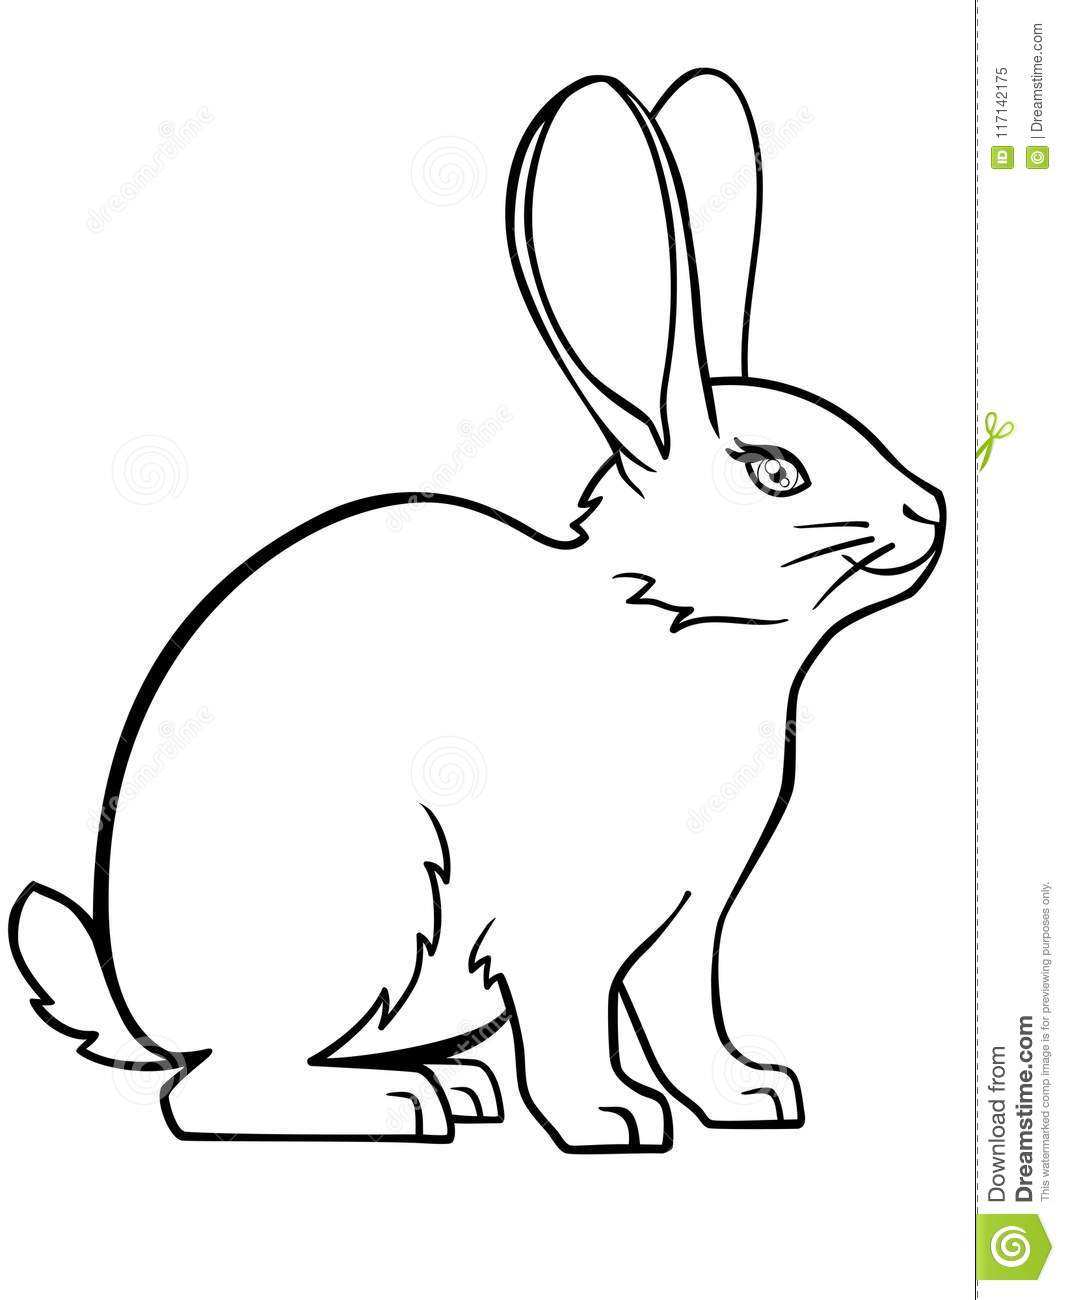 Bunny Rabbit Linear Drawing Of A Bunny Template For Coloring